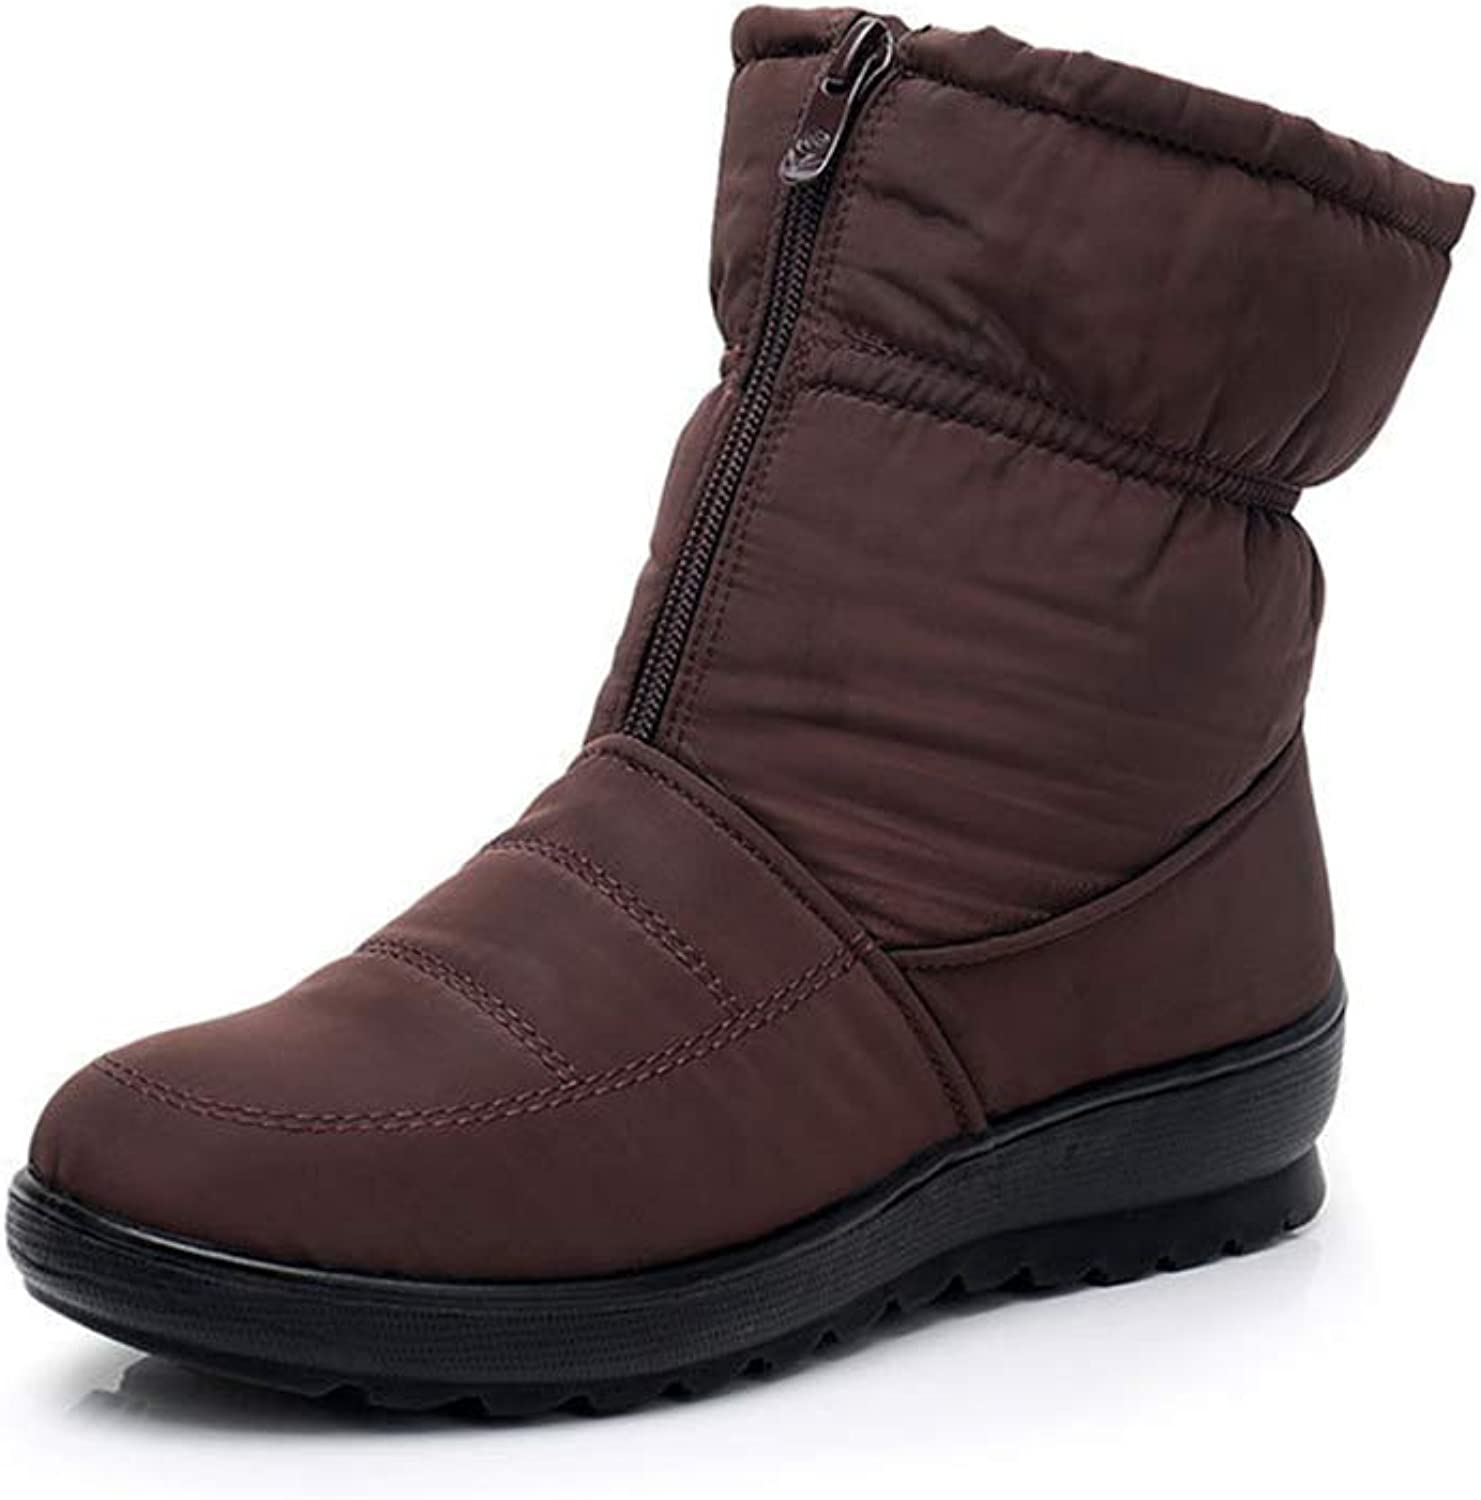 Super explosion Christmas Women's Warm Winter Snow Boots Anti-Slip Fur Lined Waterproof Front Zipper Ankle Boots